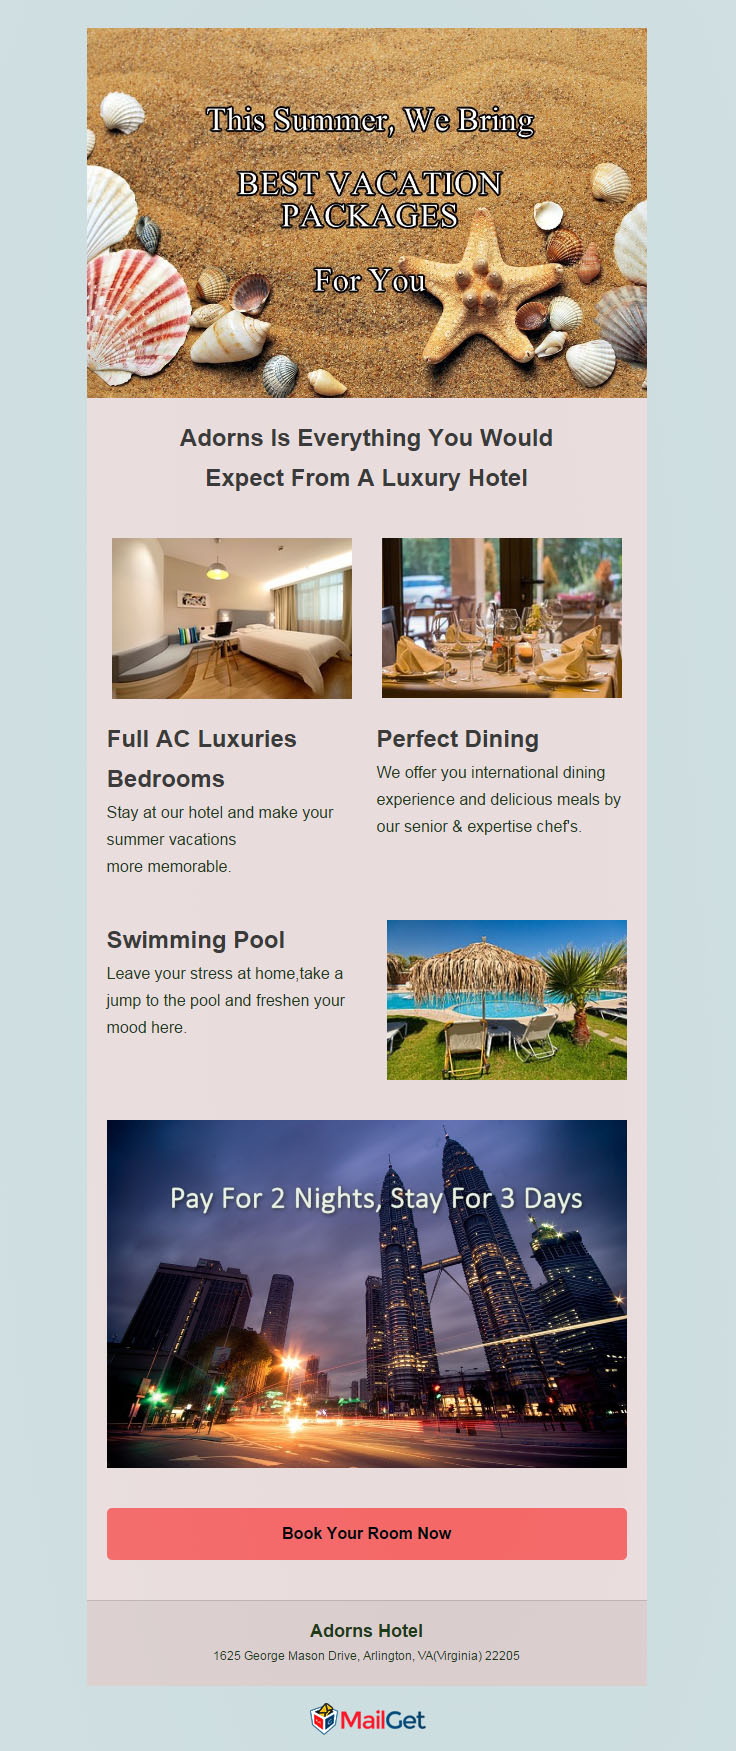 5 Free Hotel Email Marketing Templates | FormGet